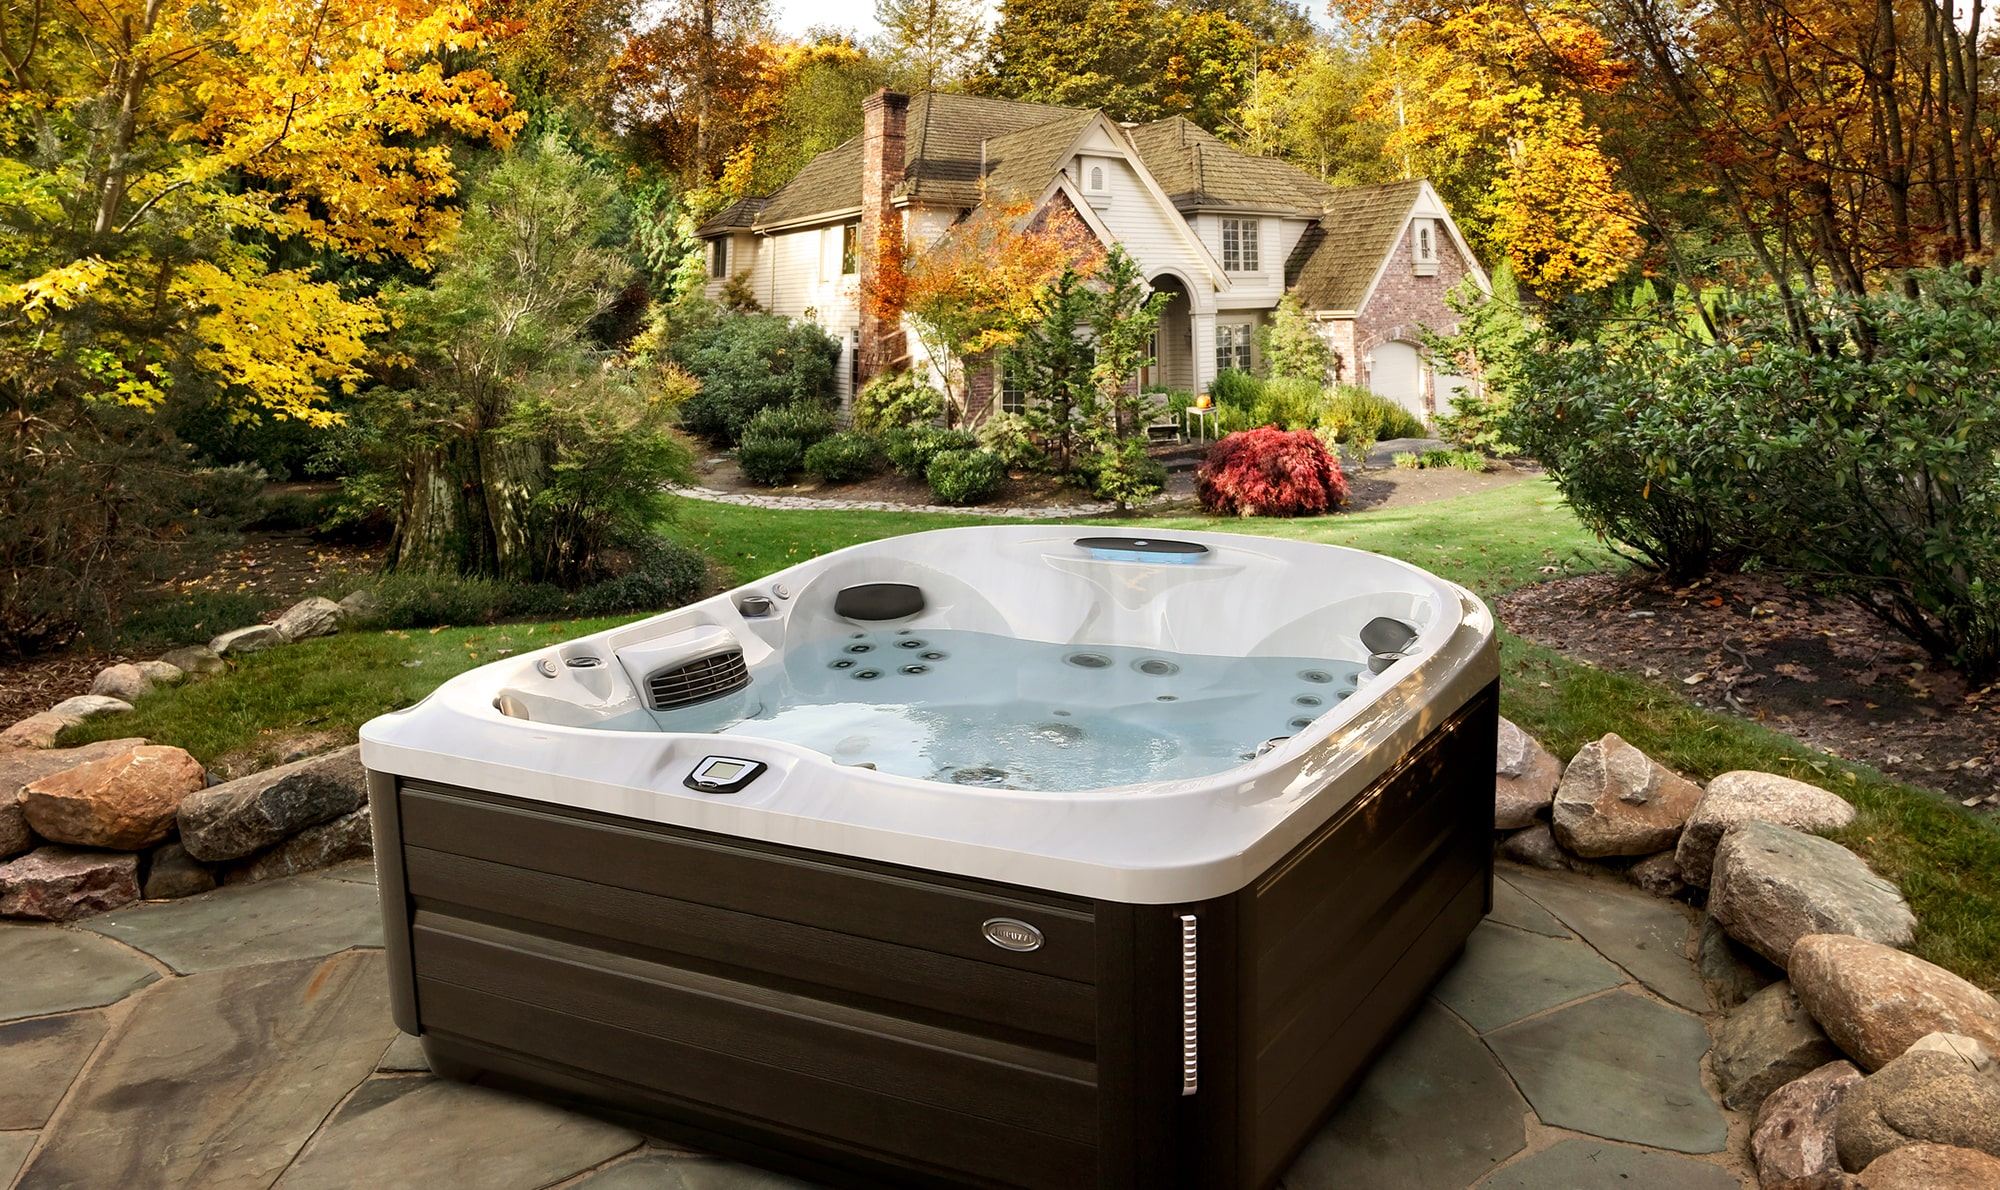 J-485 Hot Tub Installation in the Fall